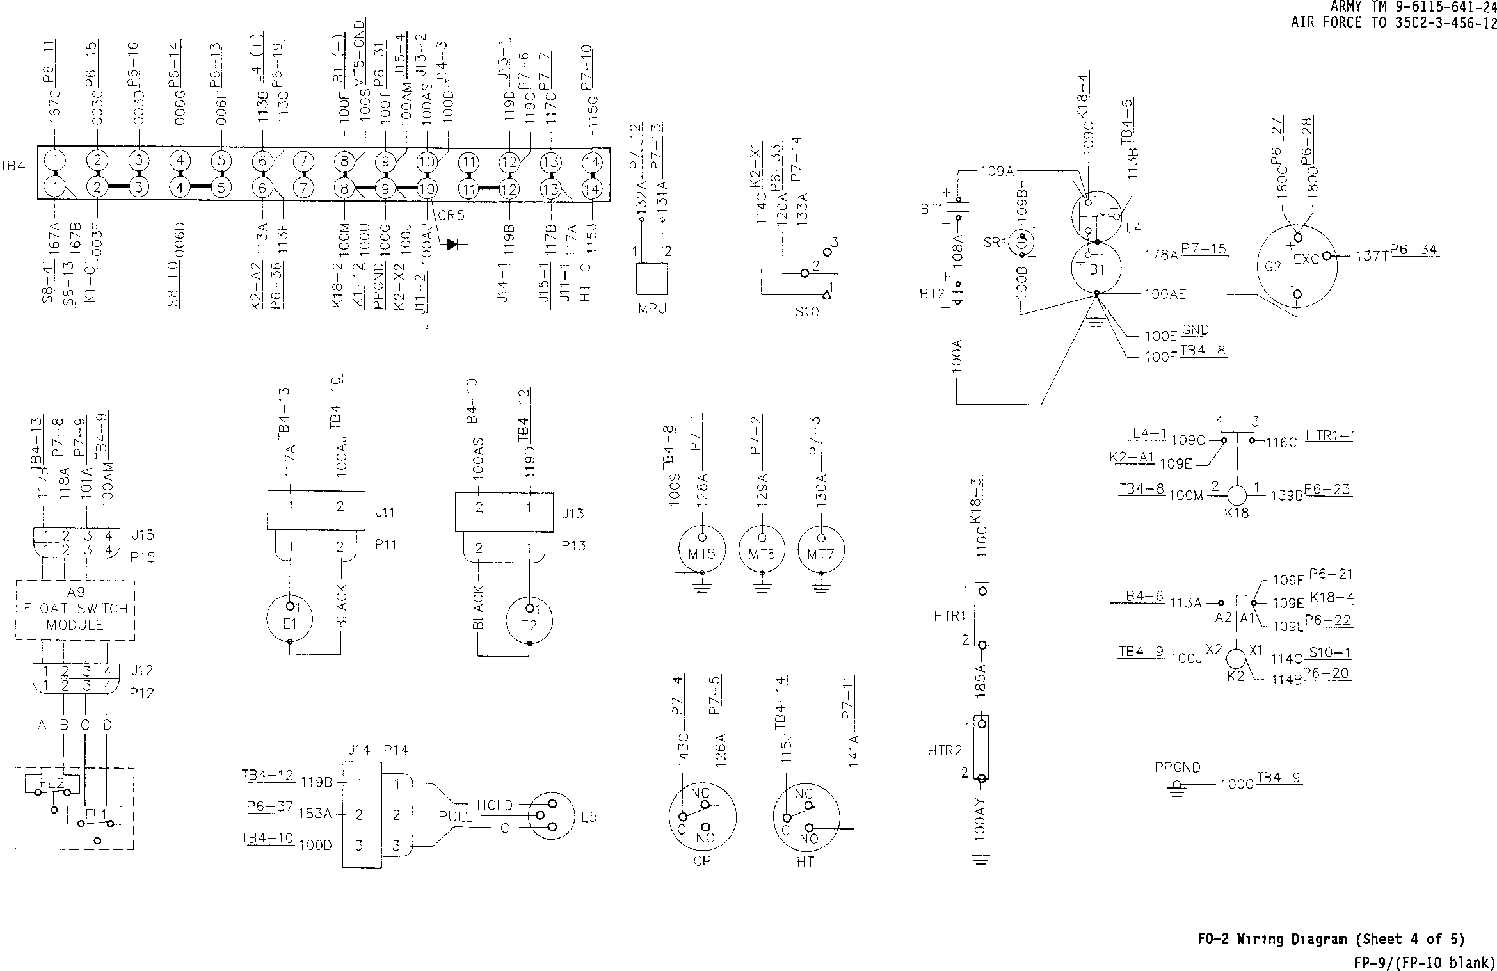 Fo 2 Wiring Diagram Sheet 4 Of 5